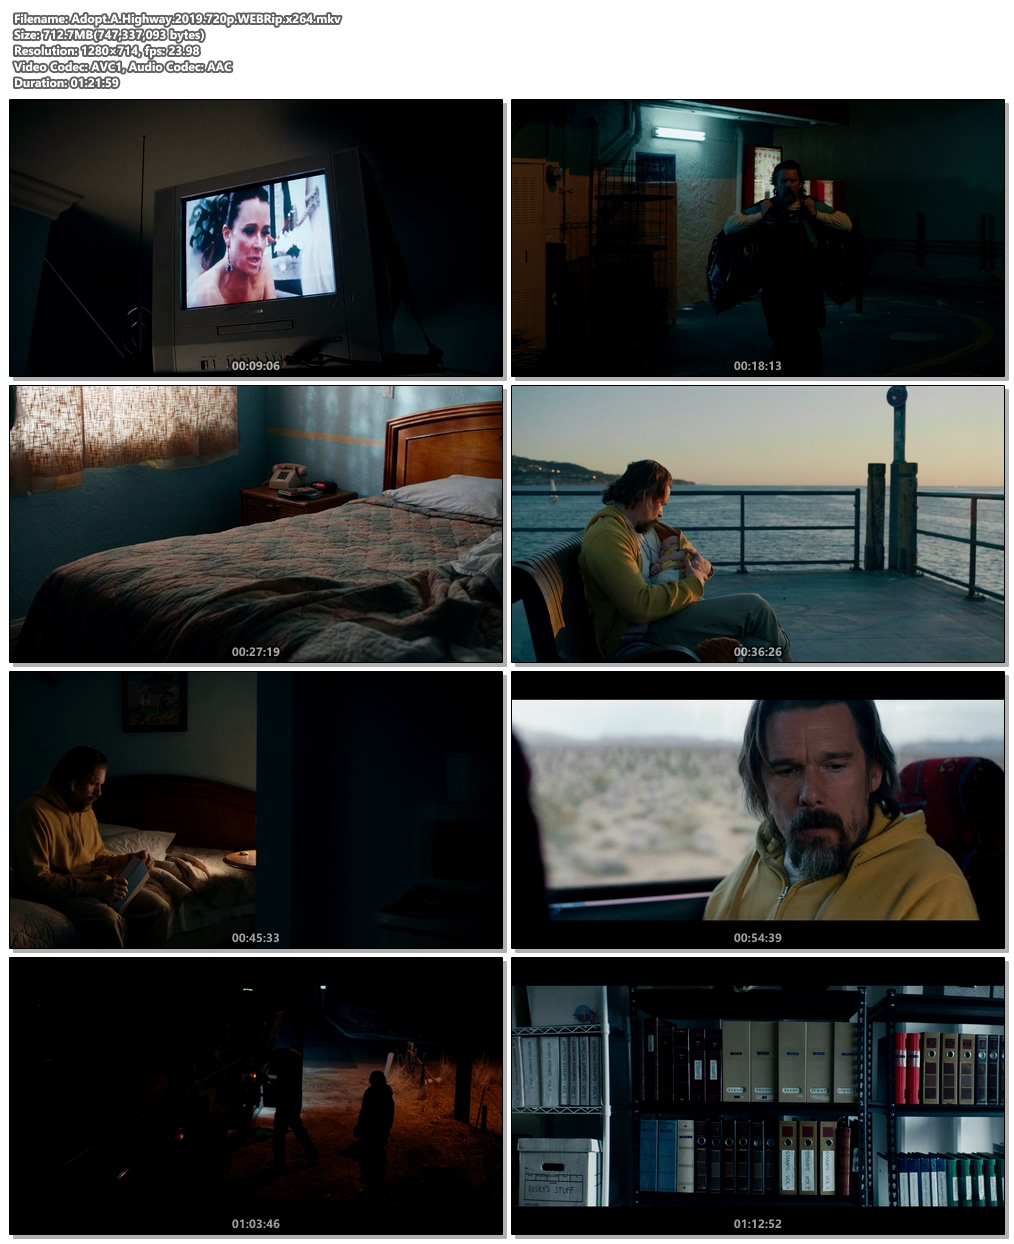 Adopt A Highway 2019 720p WEBRip x264 | 480p 300MB | 100MB HEVC Screenshot